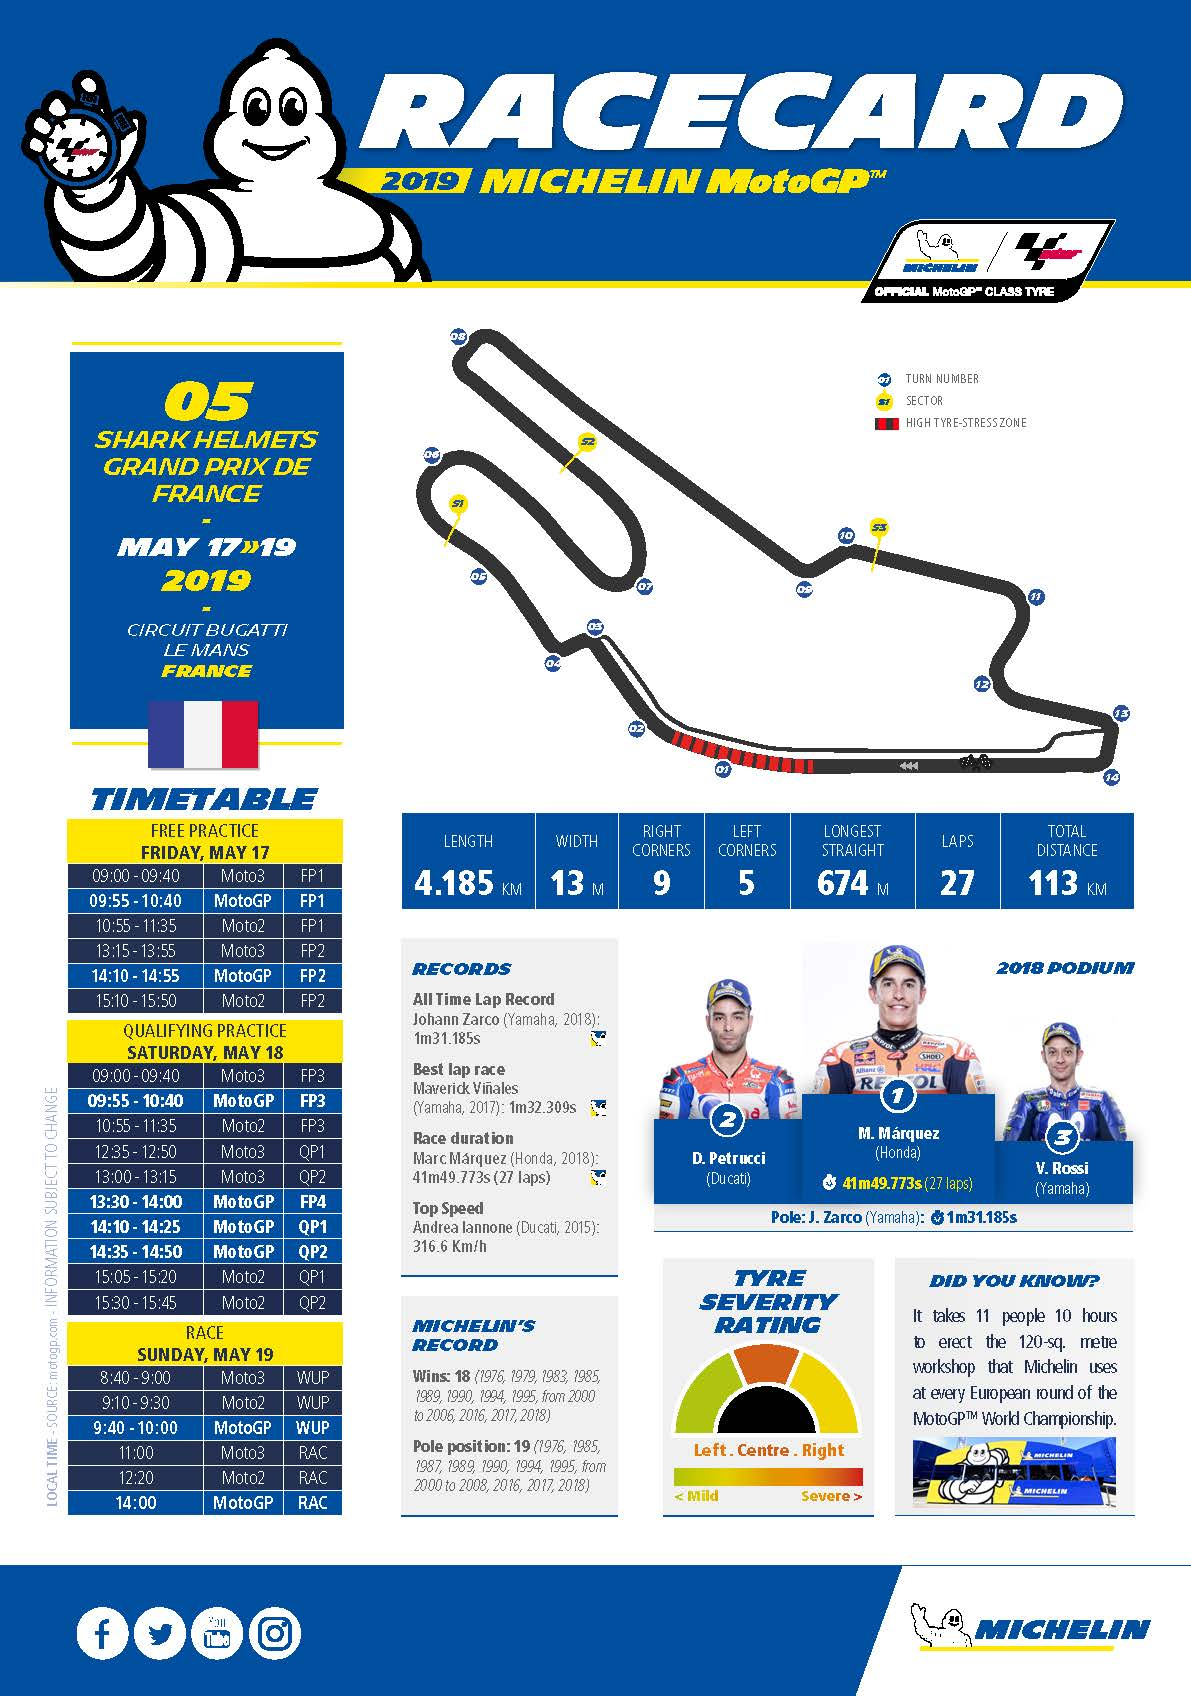 5-FranceGP_MICHELIN_MotoGP_Racecard_GB_Page_1